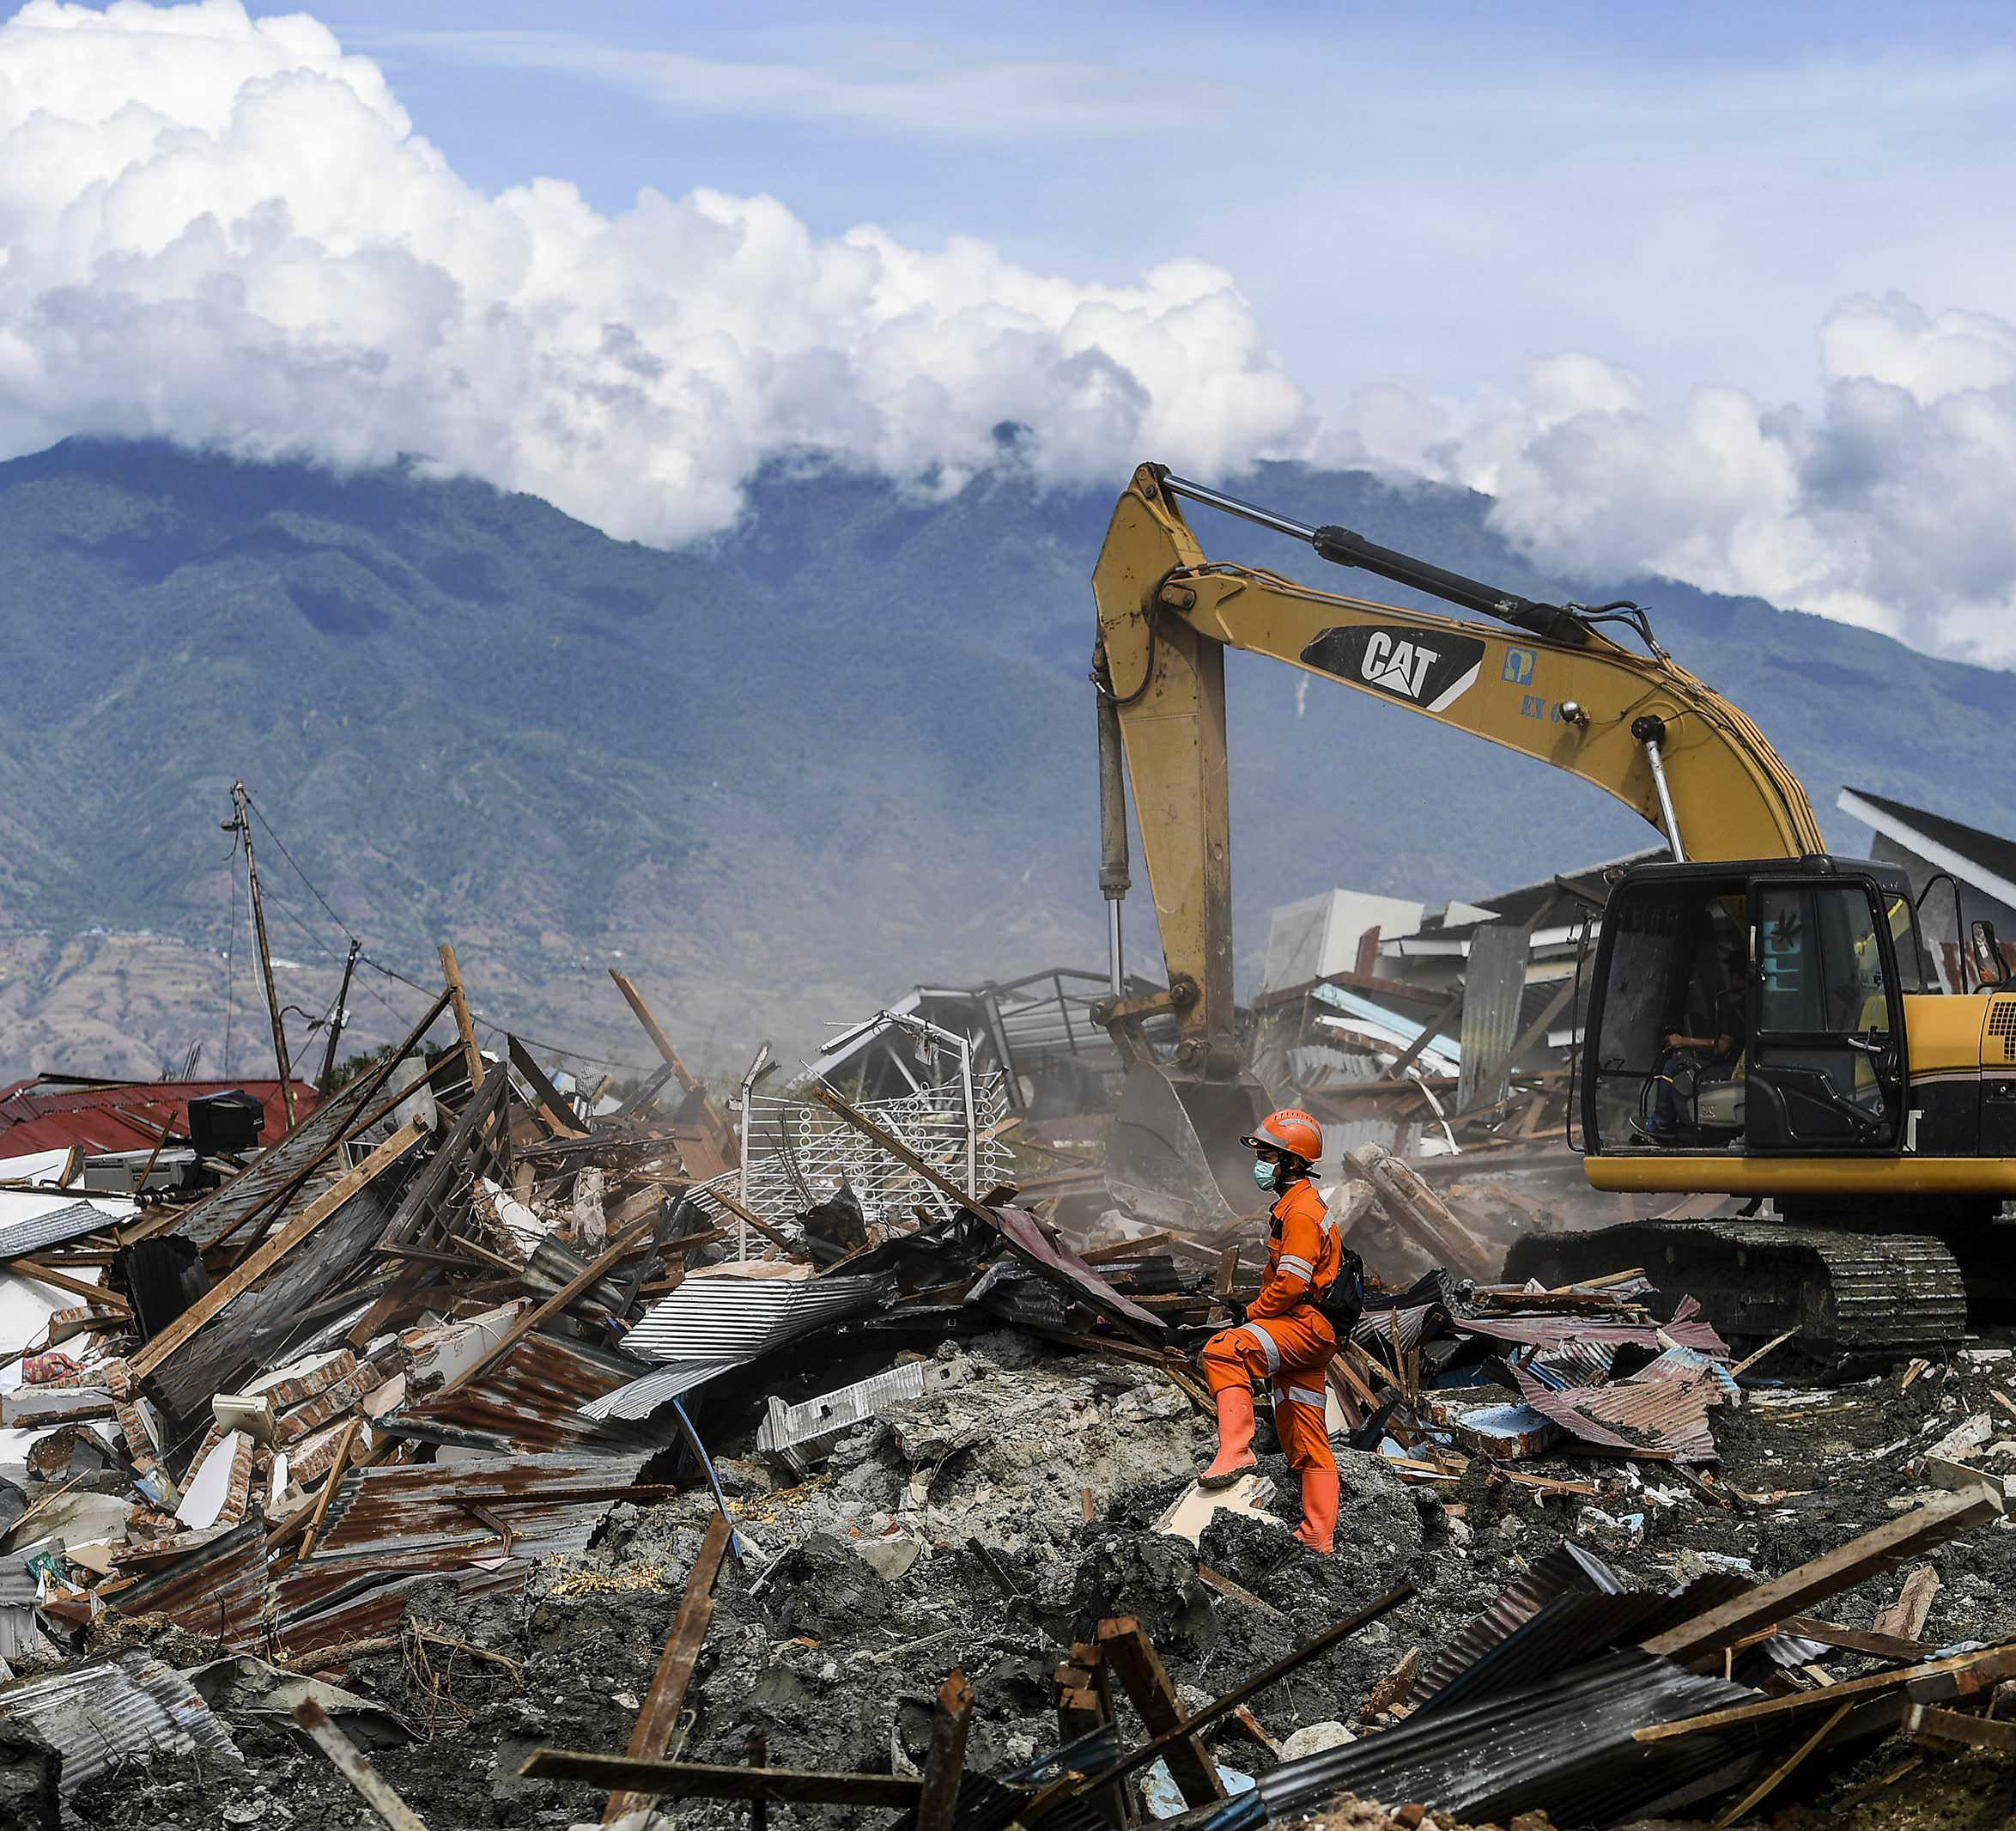 Losses From Natural Disasters Surge Over Last 20 Years